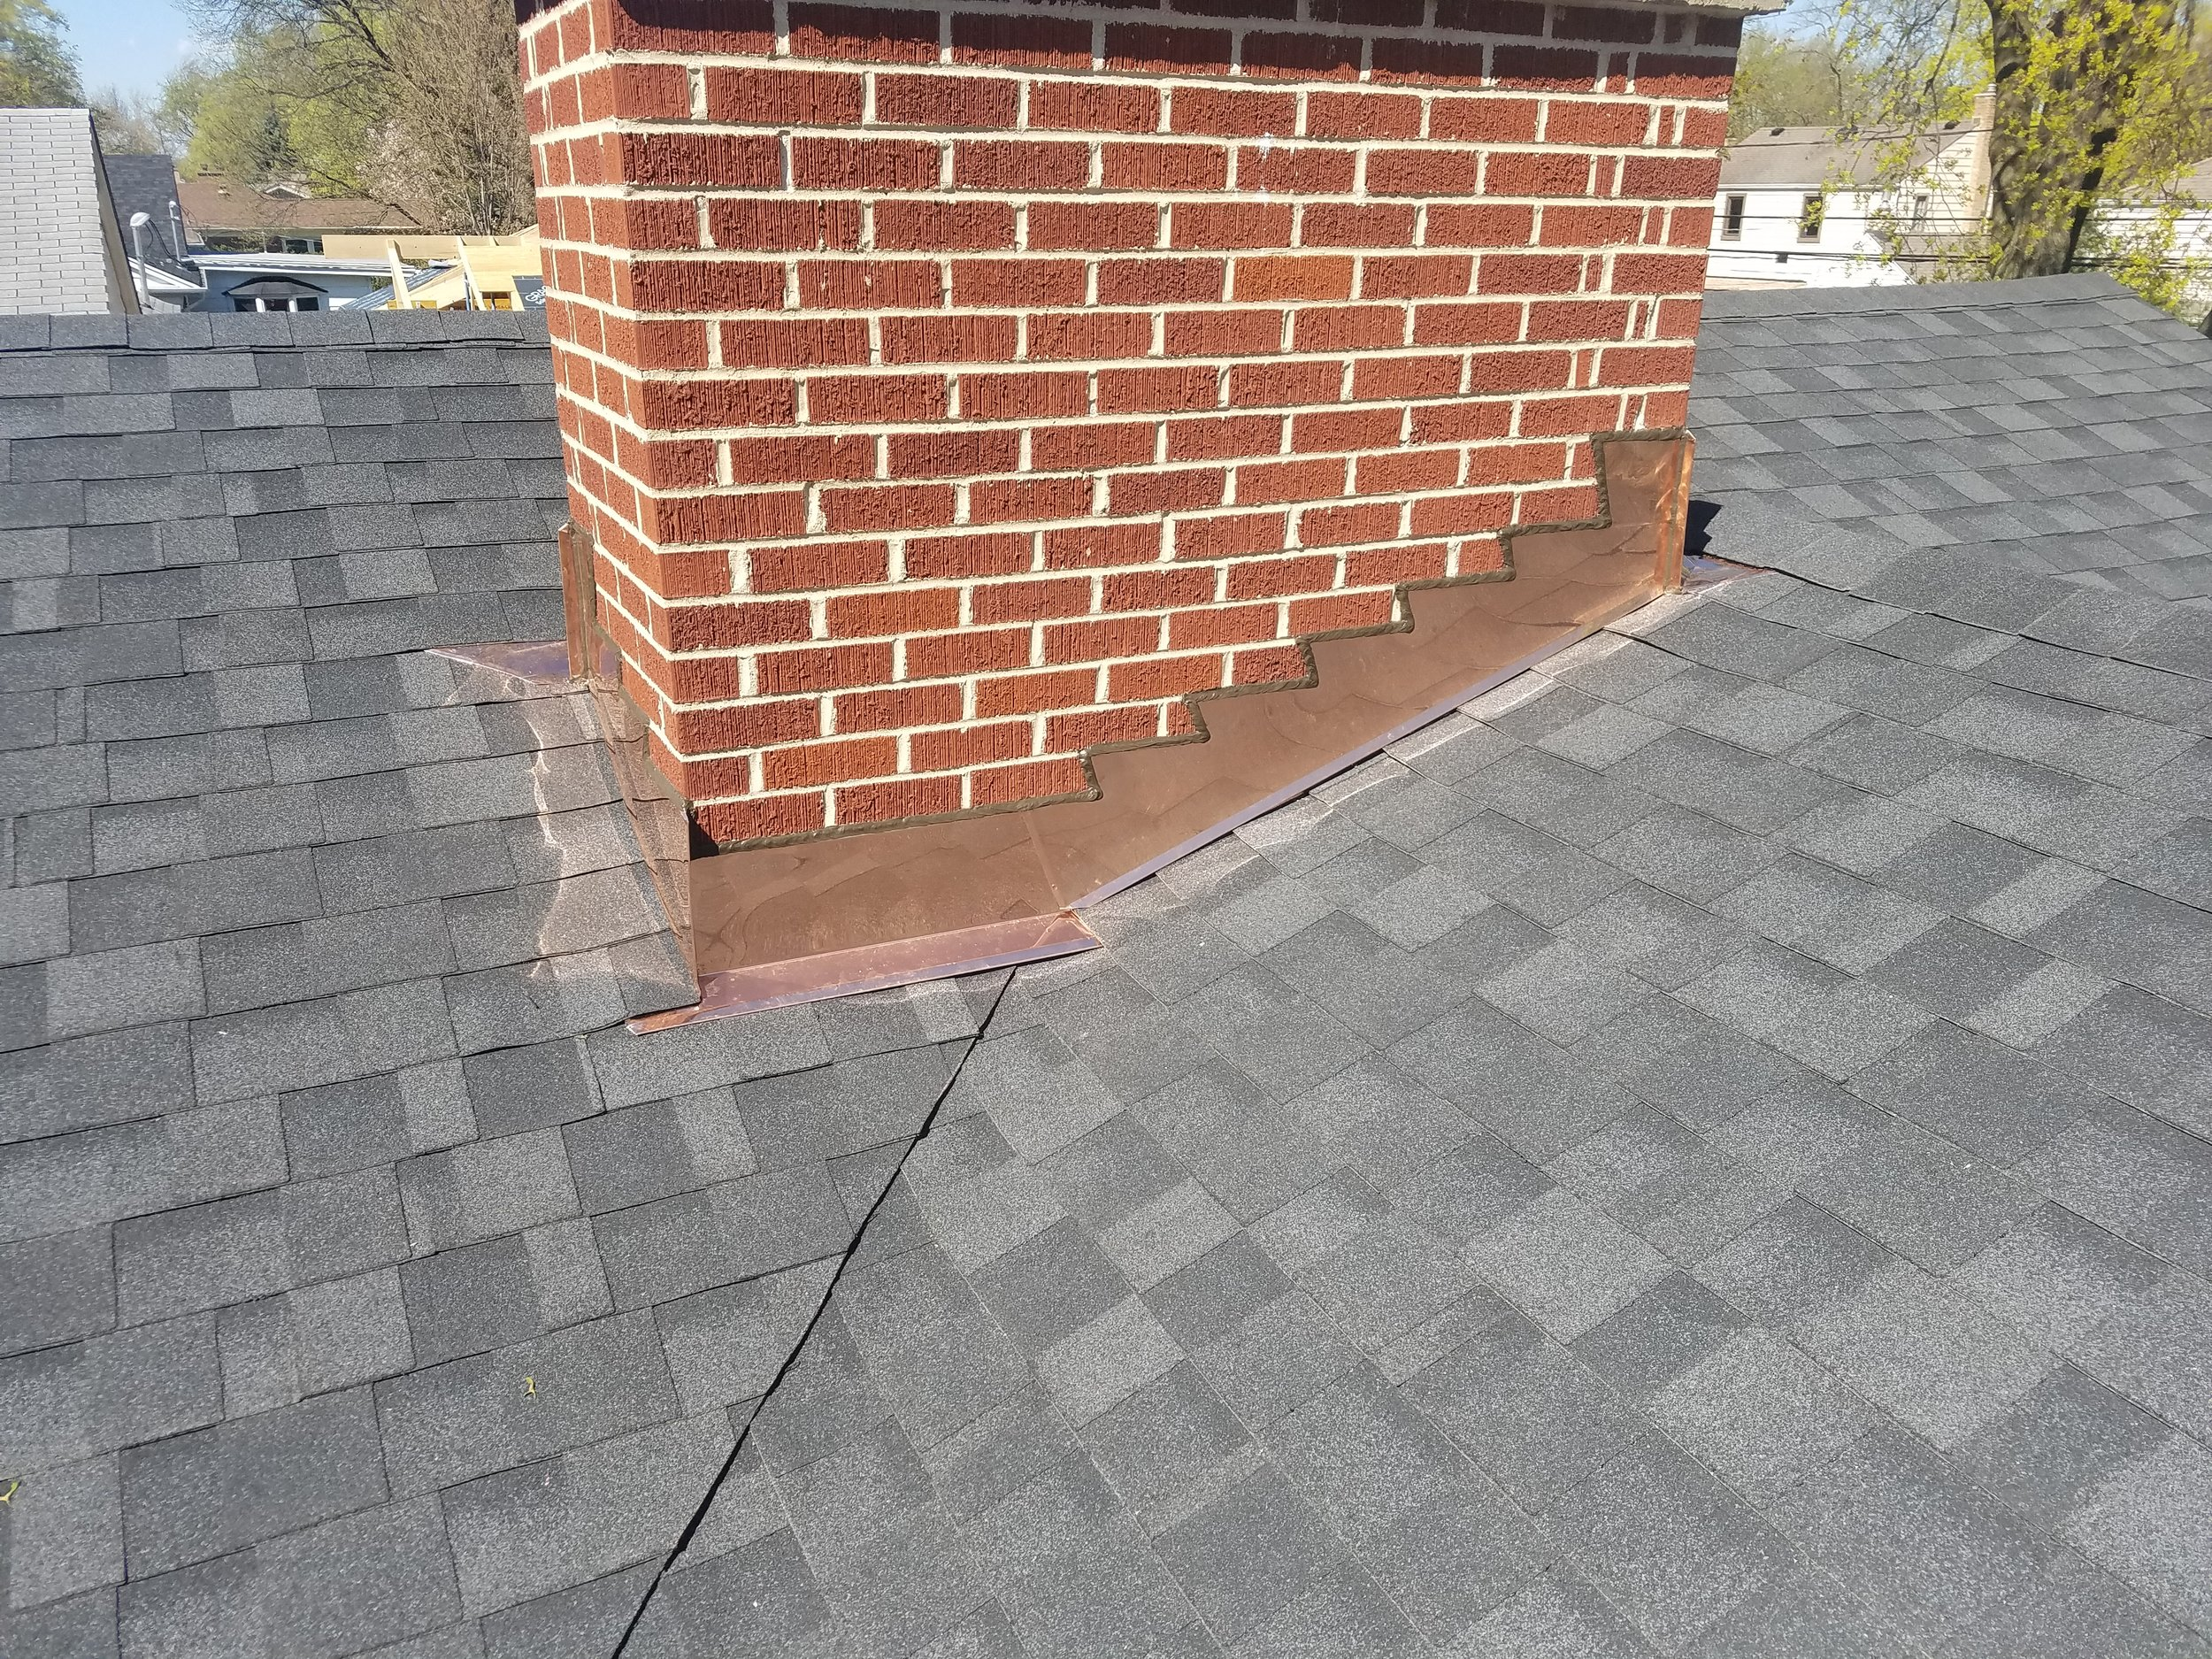 Schedule An Estimate! - We have a 5.0 Rating on Facebook, 4.8 Rating on GAF and 4.5 Rating on Google! We believe in old-fashioned virtues like high-quality services and accountability. You can be confident in choosing us for all of your roofing needs, knowing our work is held in high esteem by one of America's largest roofing manufacturers.Schedule your FREE Estimate today and discover the Feze Roofing difference!